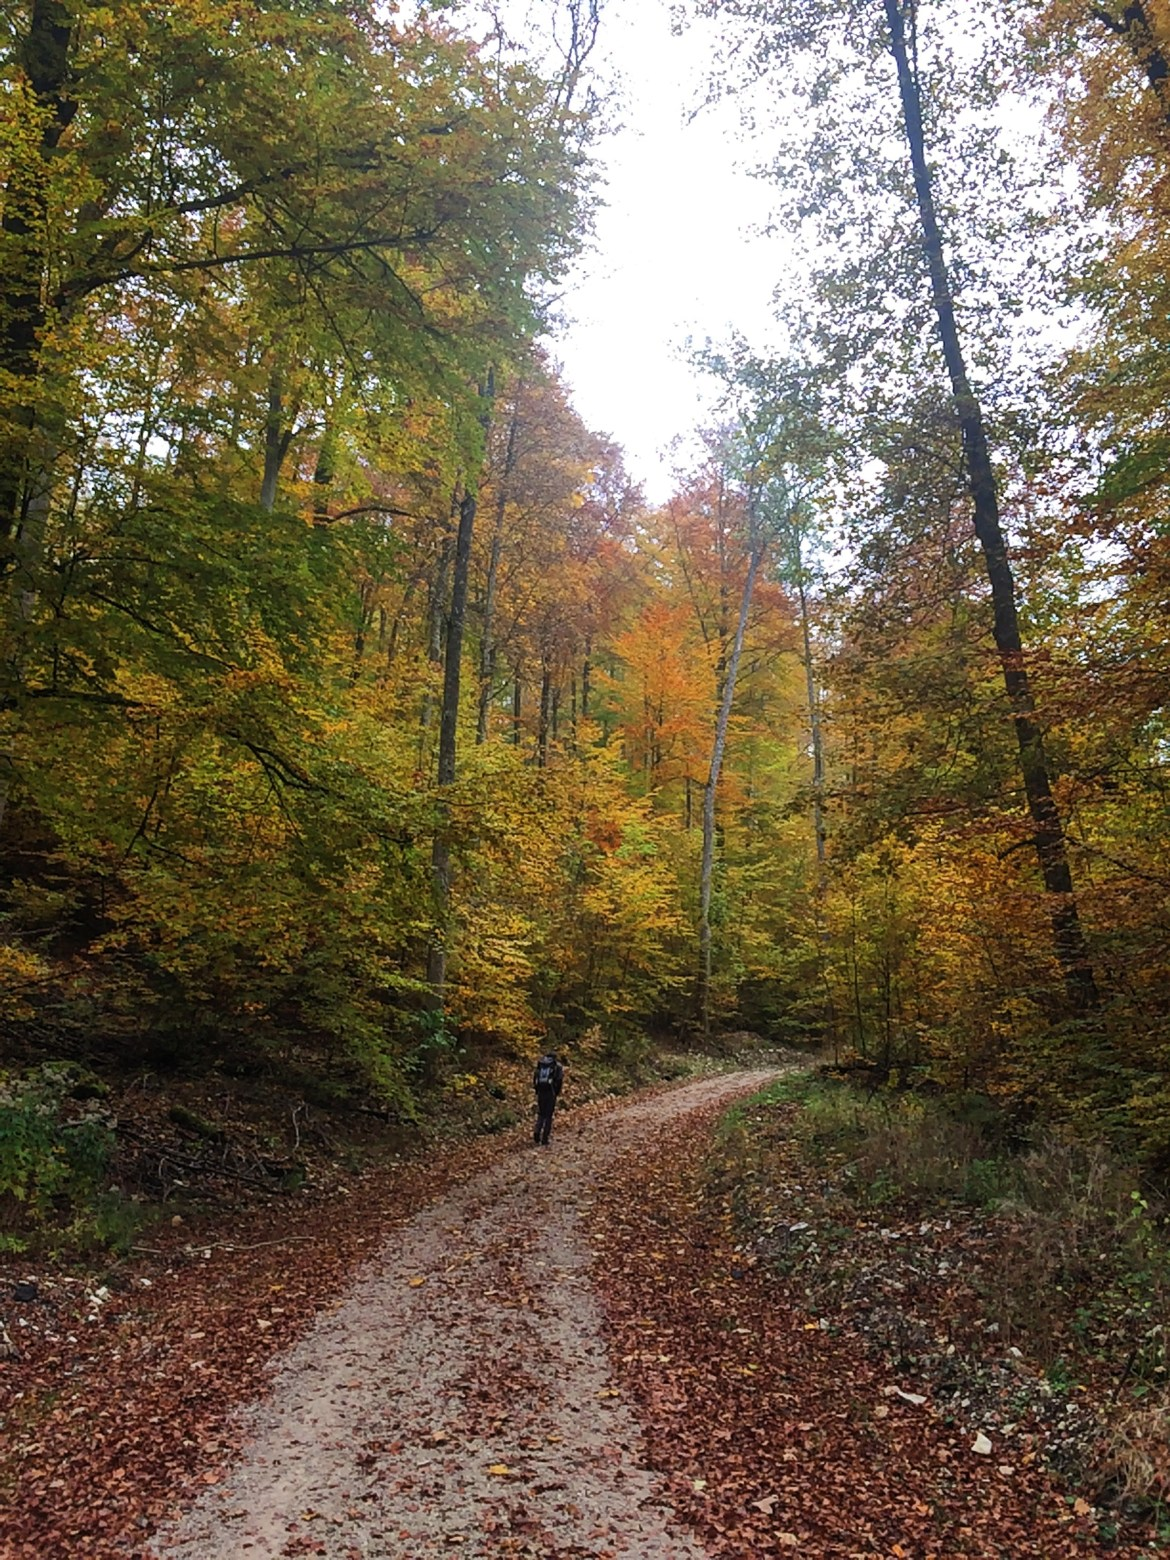 Snapshots of Fall in Germany, Autumn, Deutschland, Tubingen, Hiking with Ben in Germany